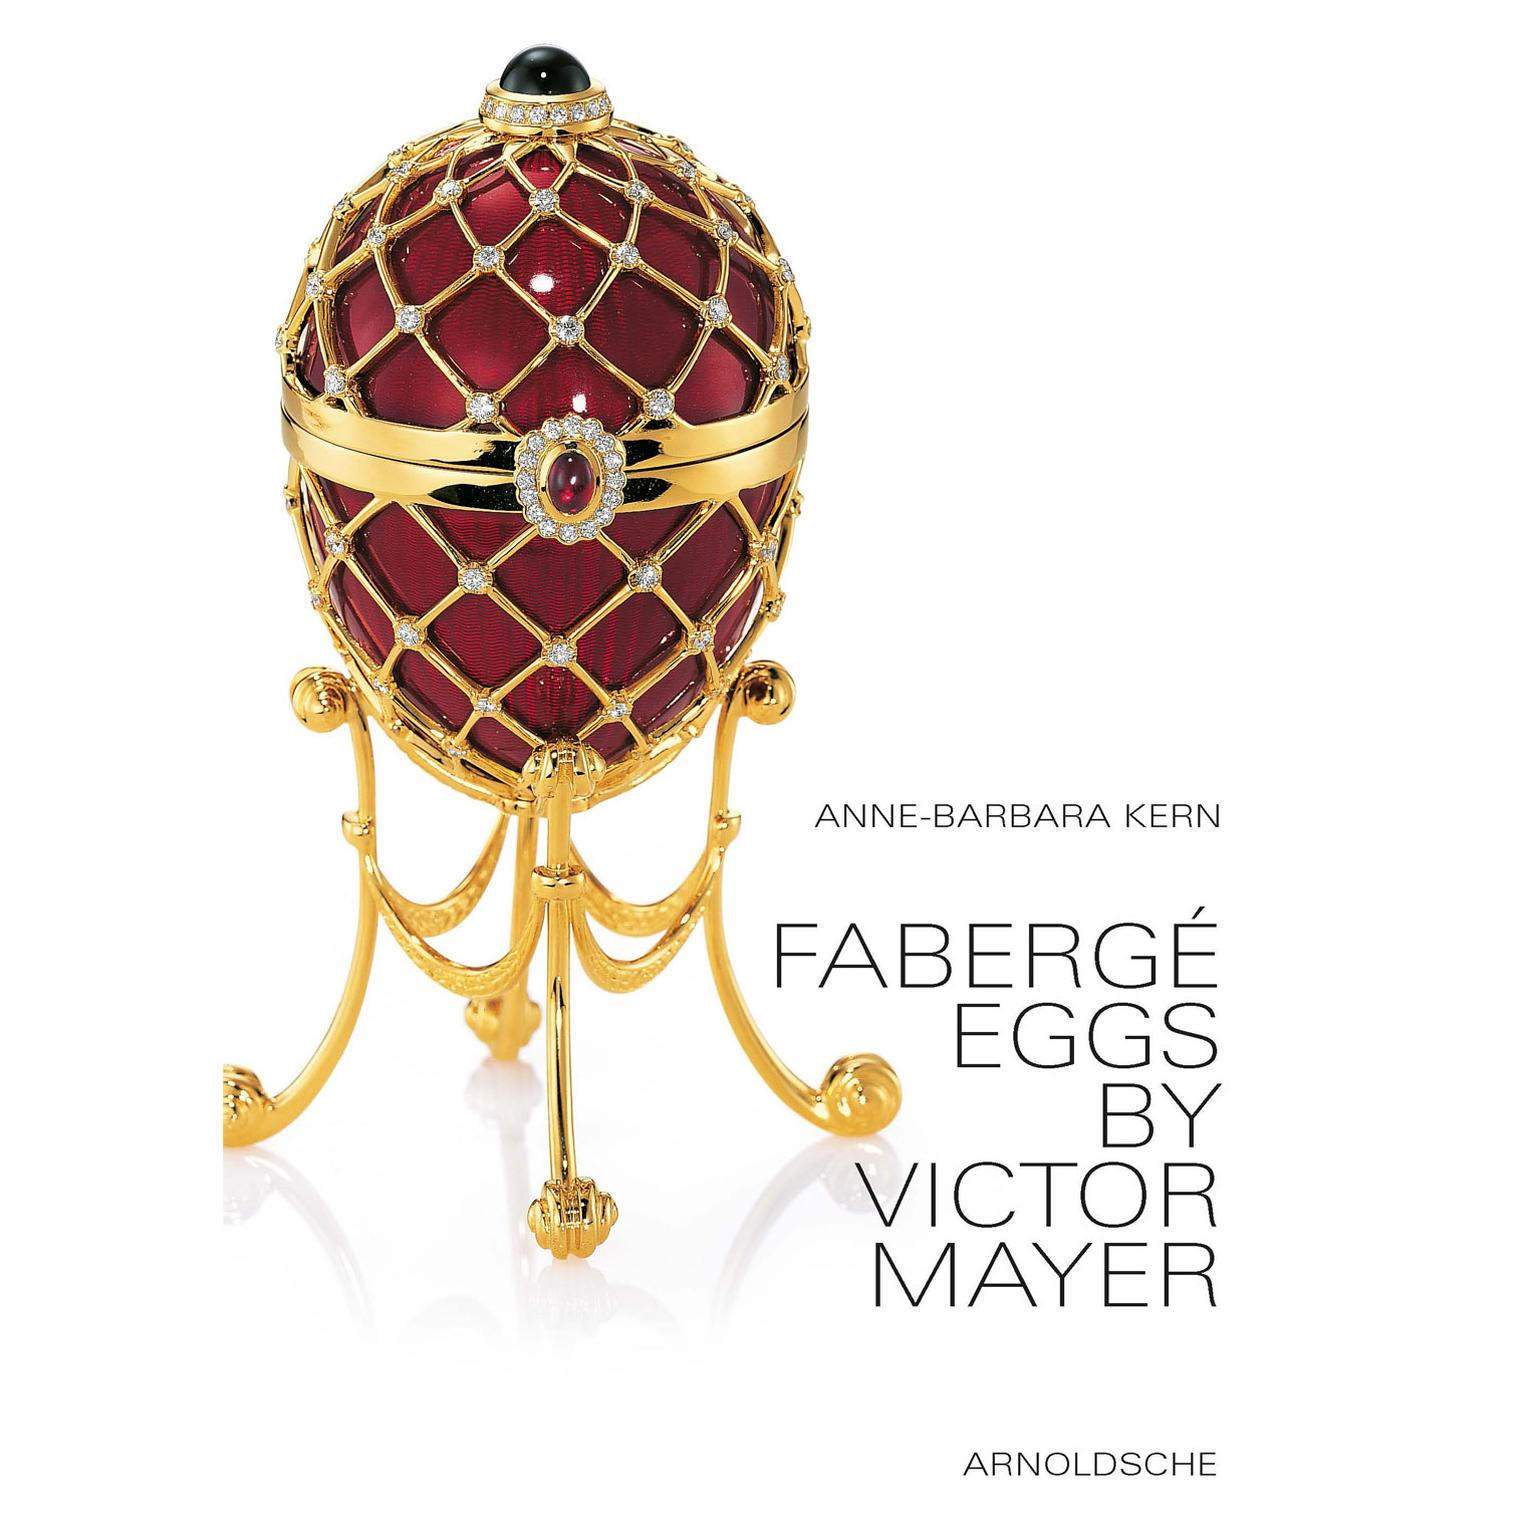 Fabergé Eggs by Victor Mayer, Anne-Barbara Kern